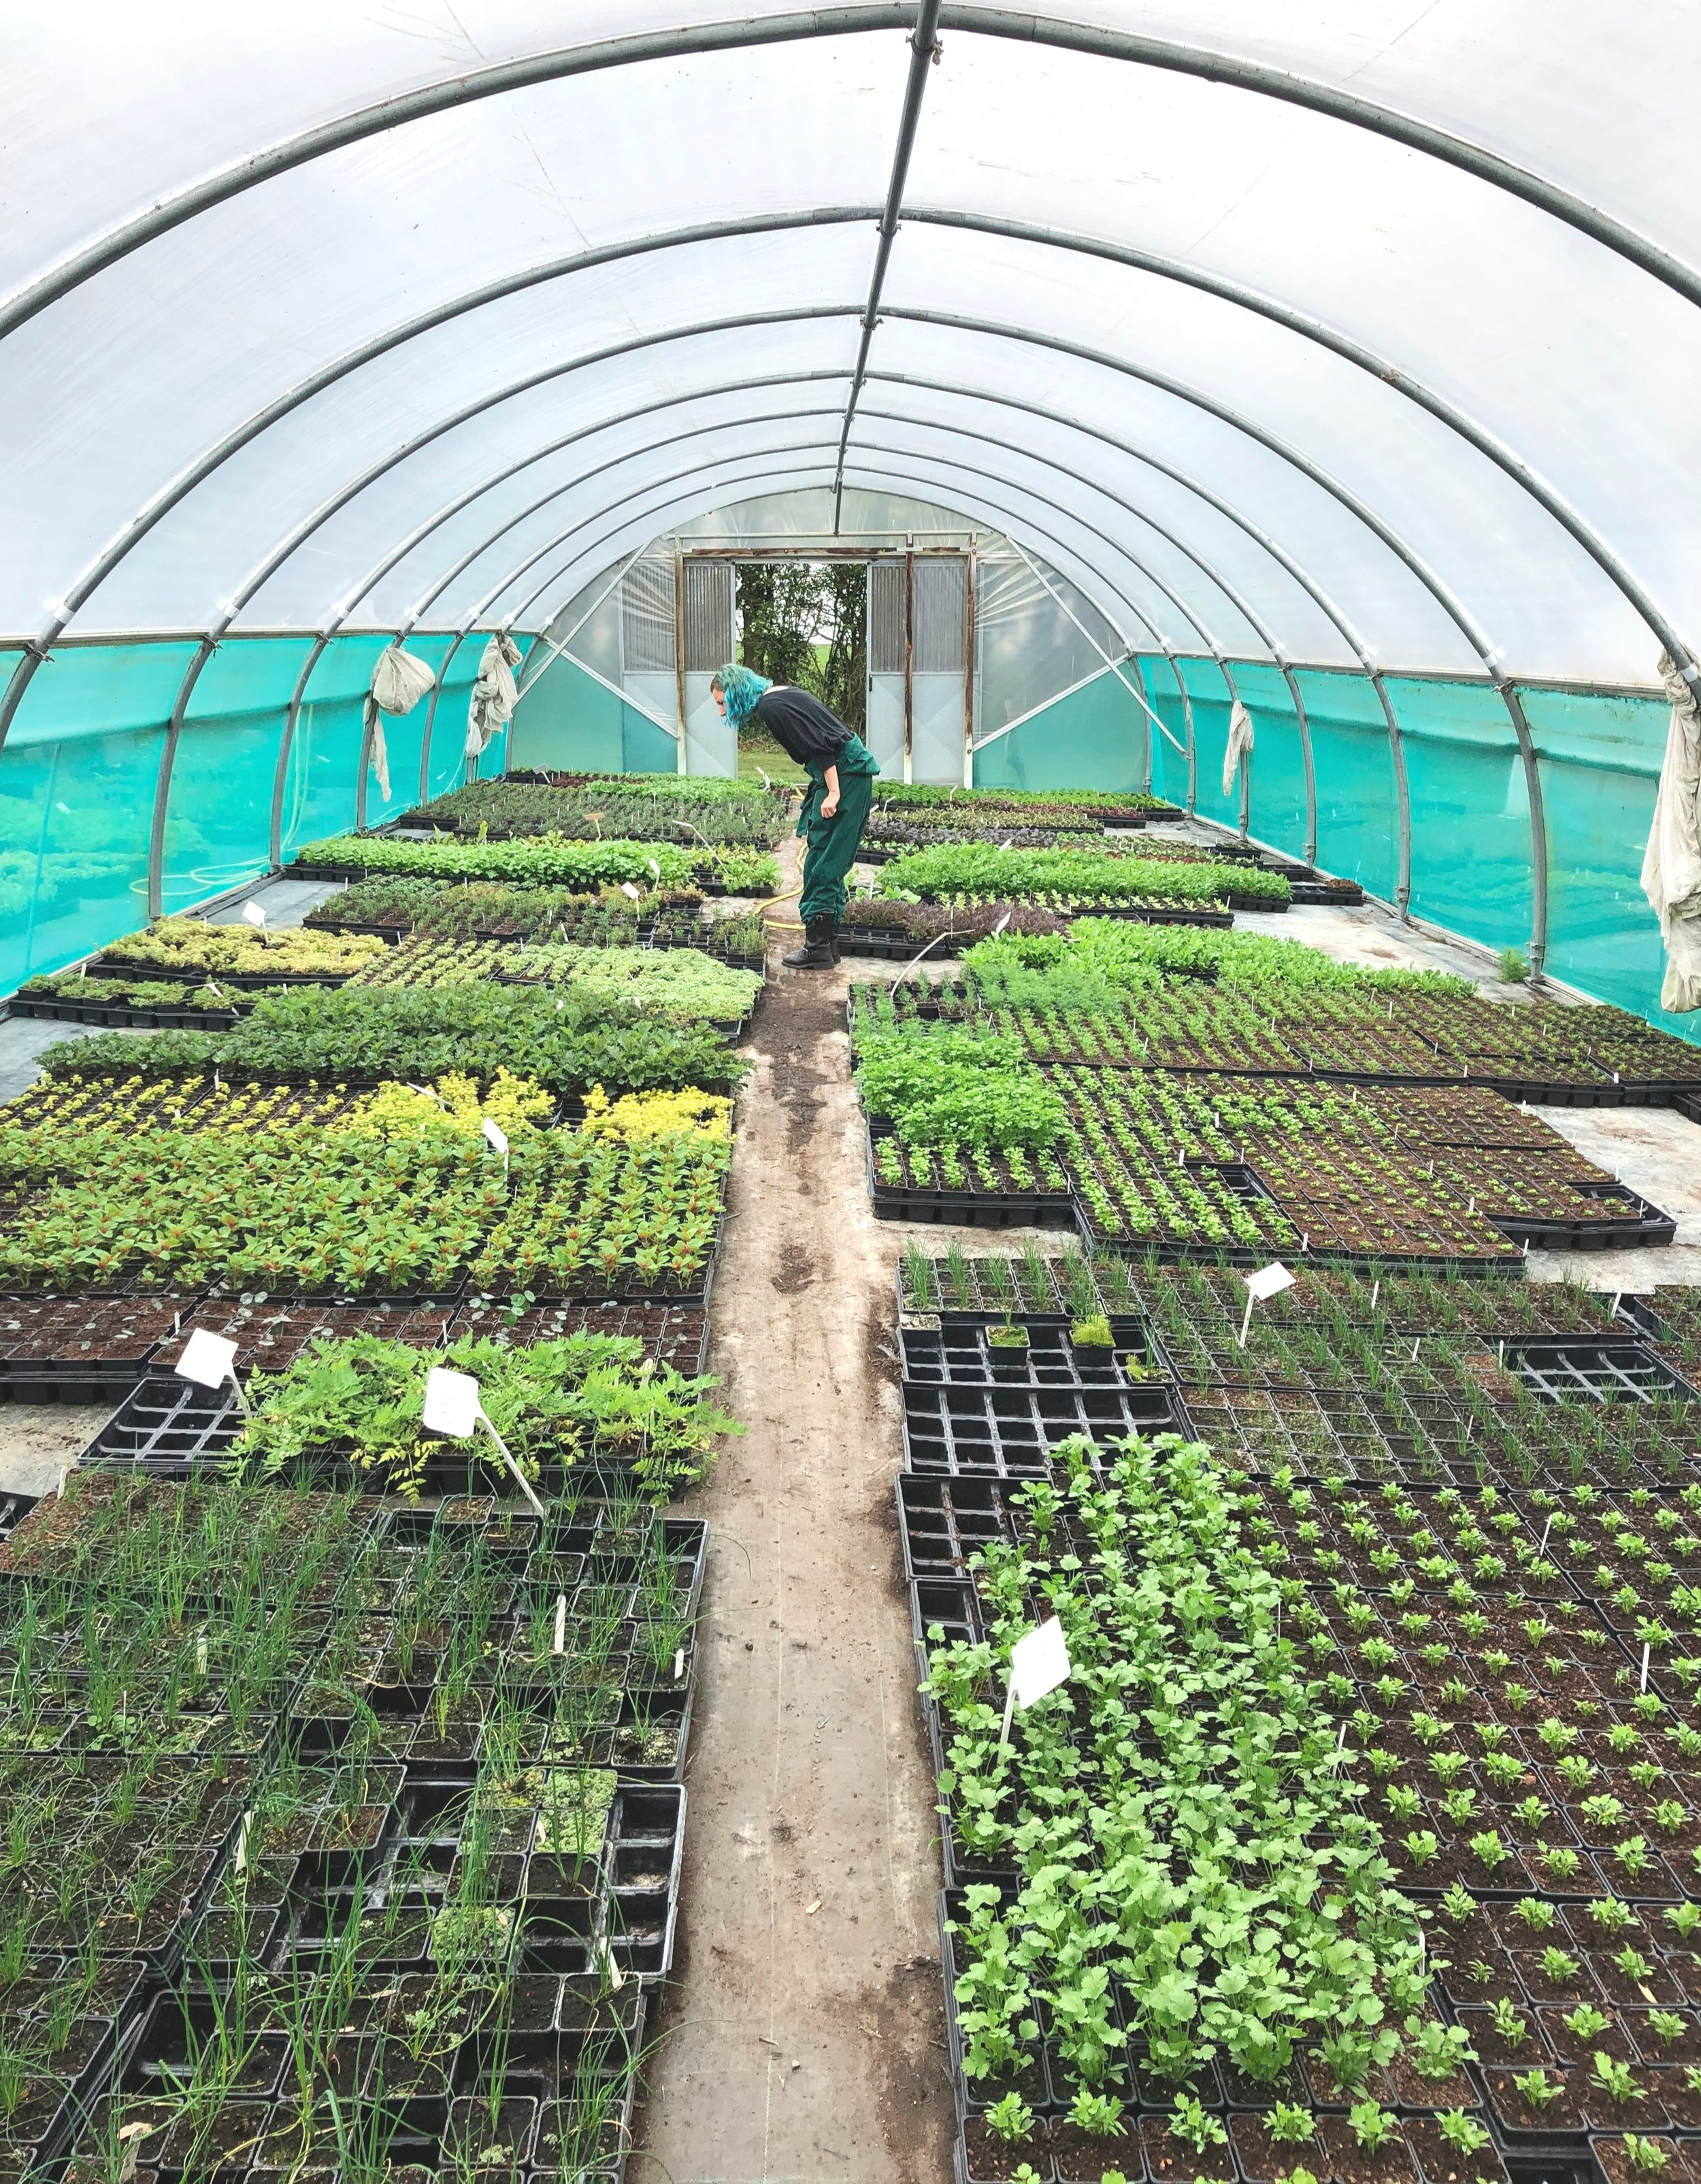 Gemma choosing plants in the polytunnel at Herbal Haven, April 2019.